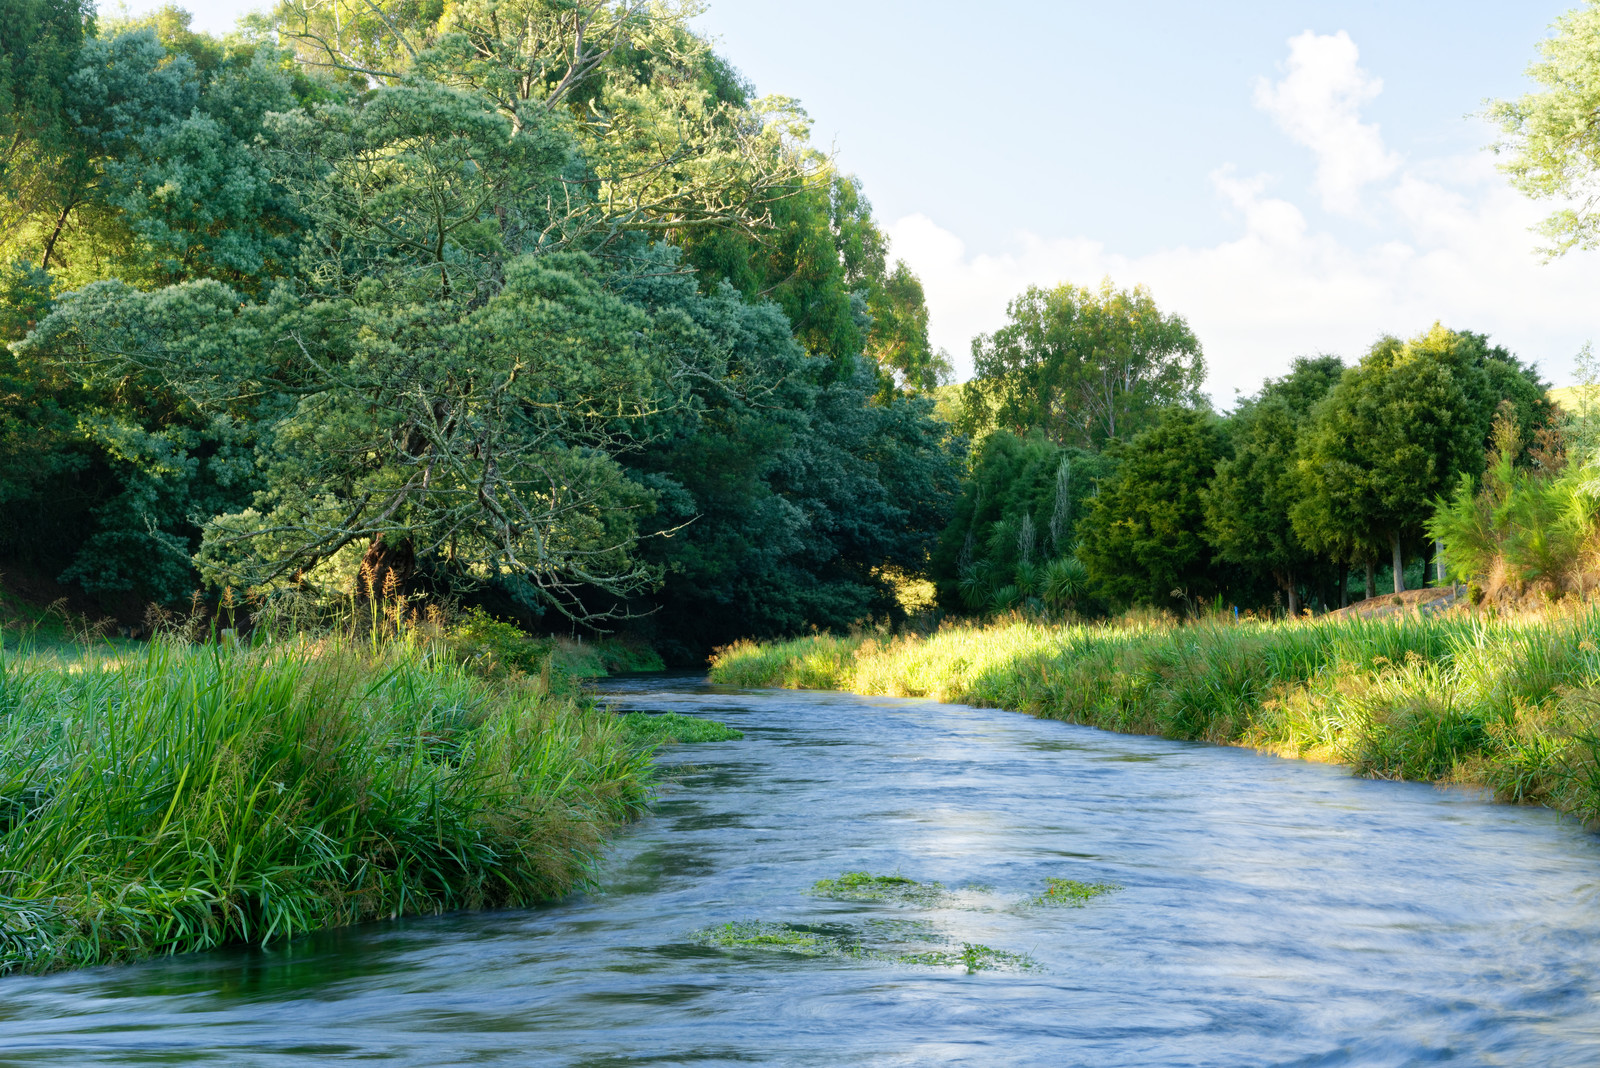 River with green grass edging the water and green trees in the background with blue skies and white puffy clouds